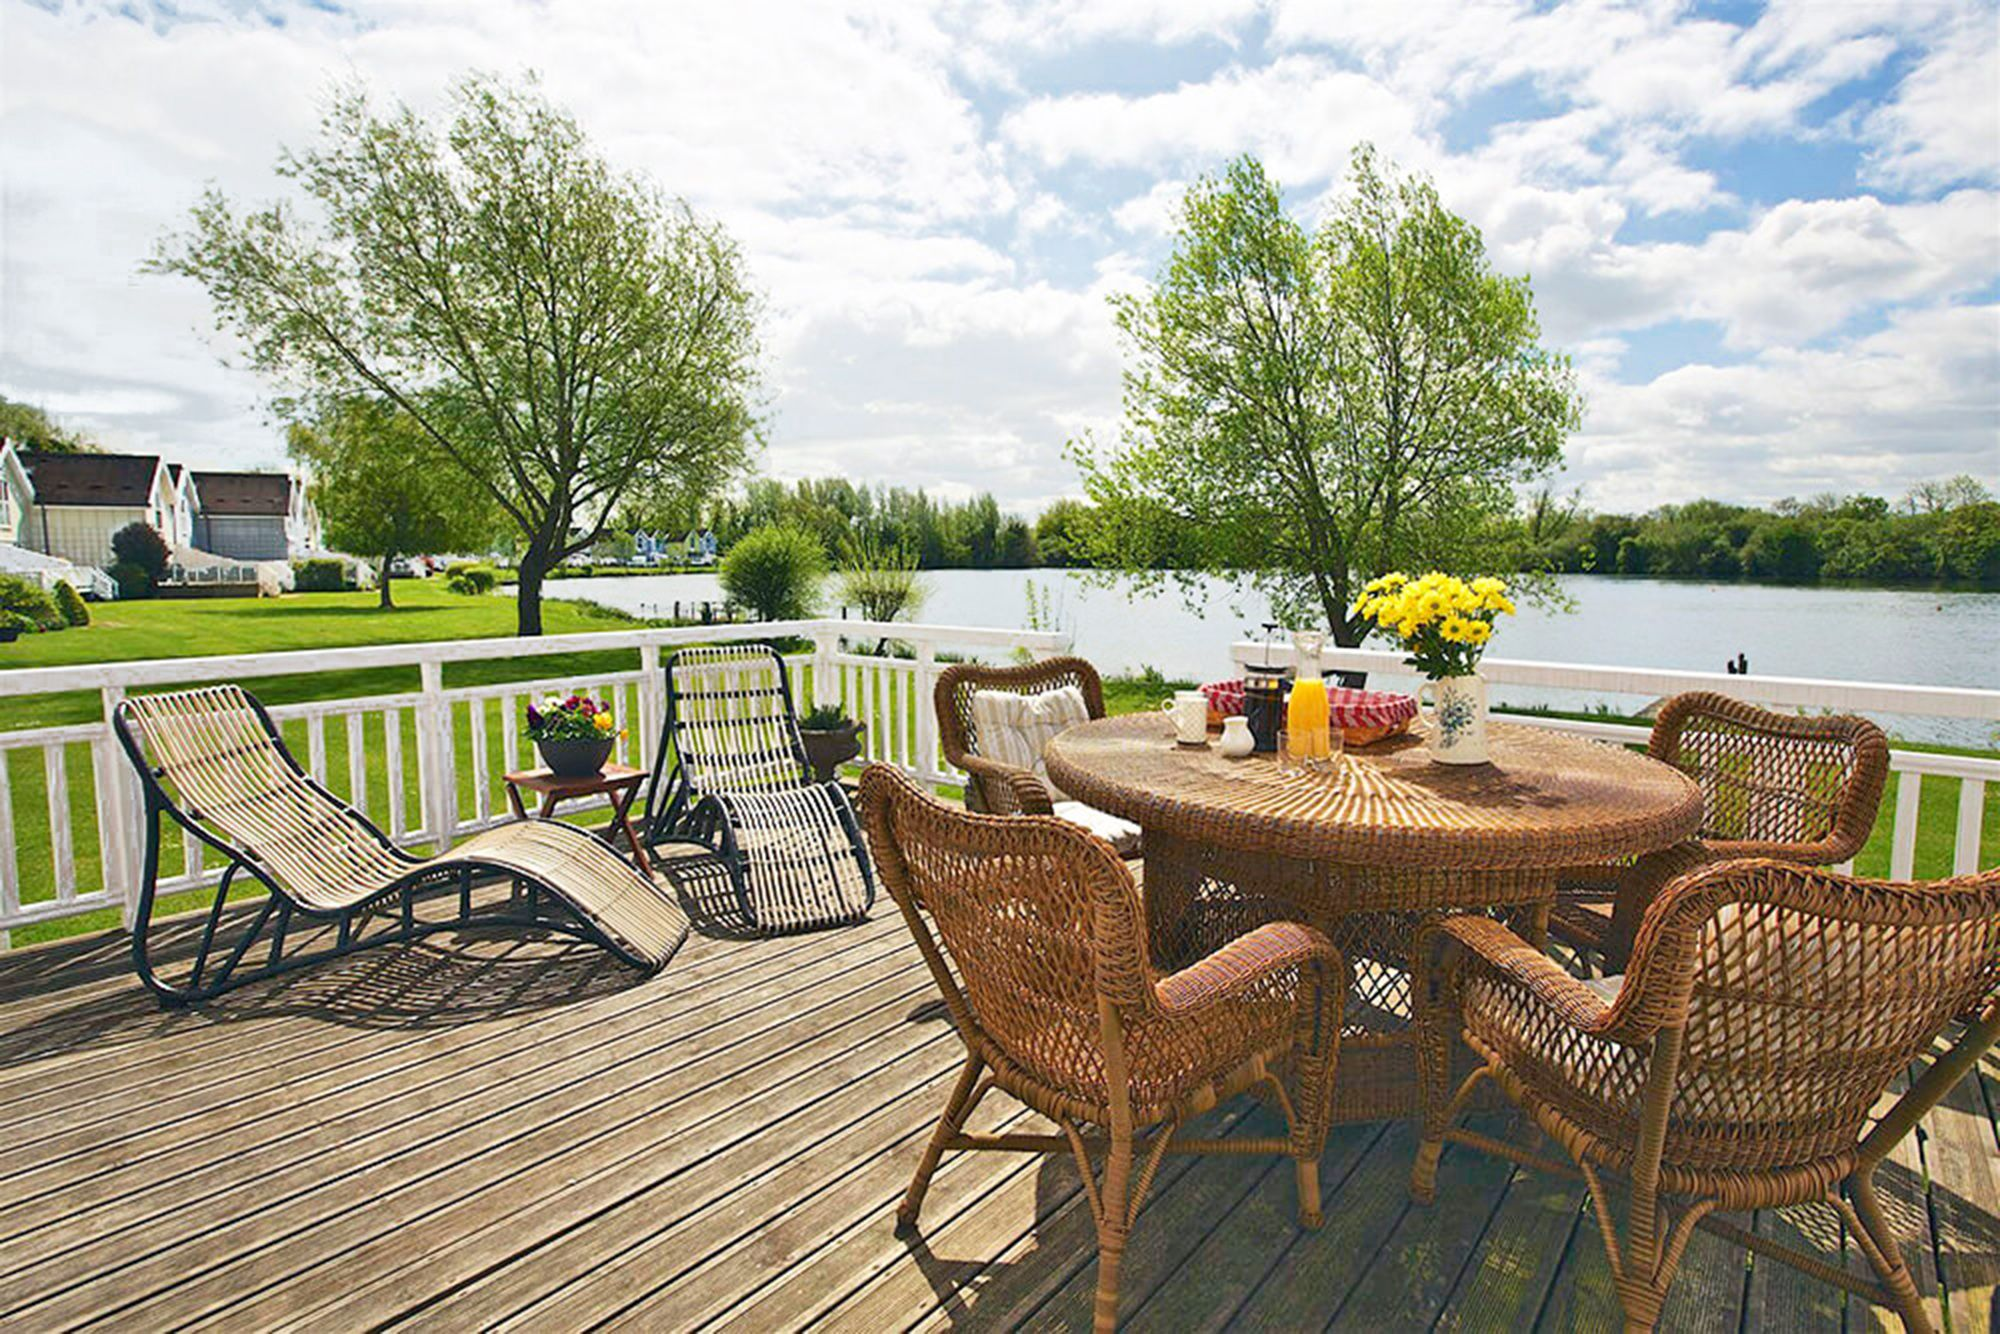 Private secure deck onto the lake with table and chairs and a barbecue